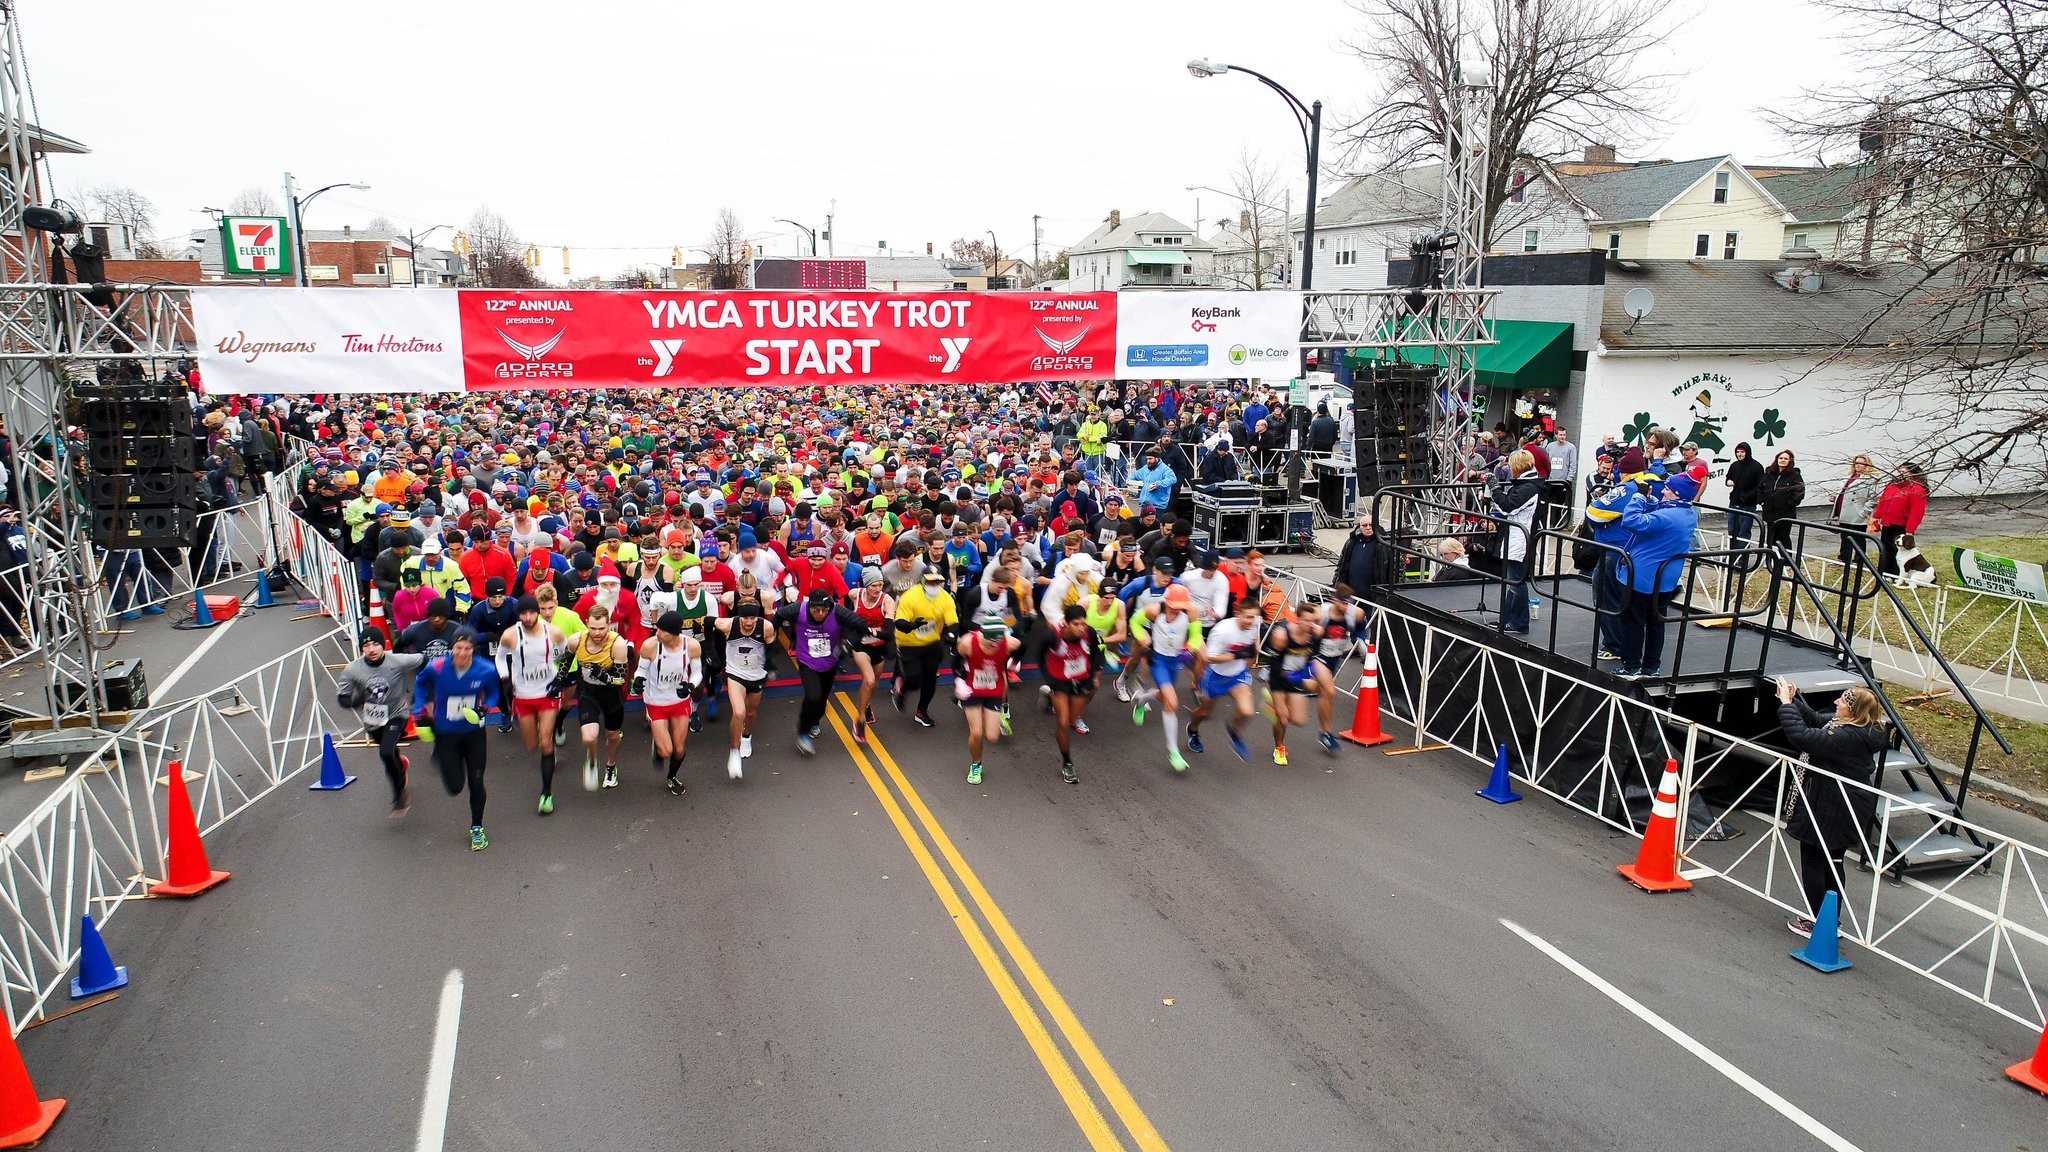 The Oldest Continuous Road Race In The World, YMCA Buffalo Turkey Trot 8-K, Will Be Held For A Record 125th Straight Year This Year